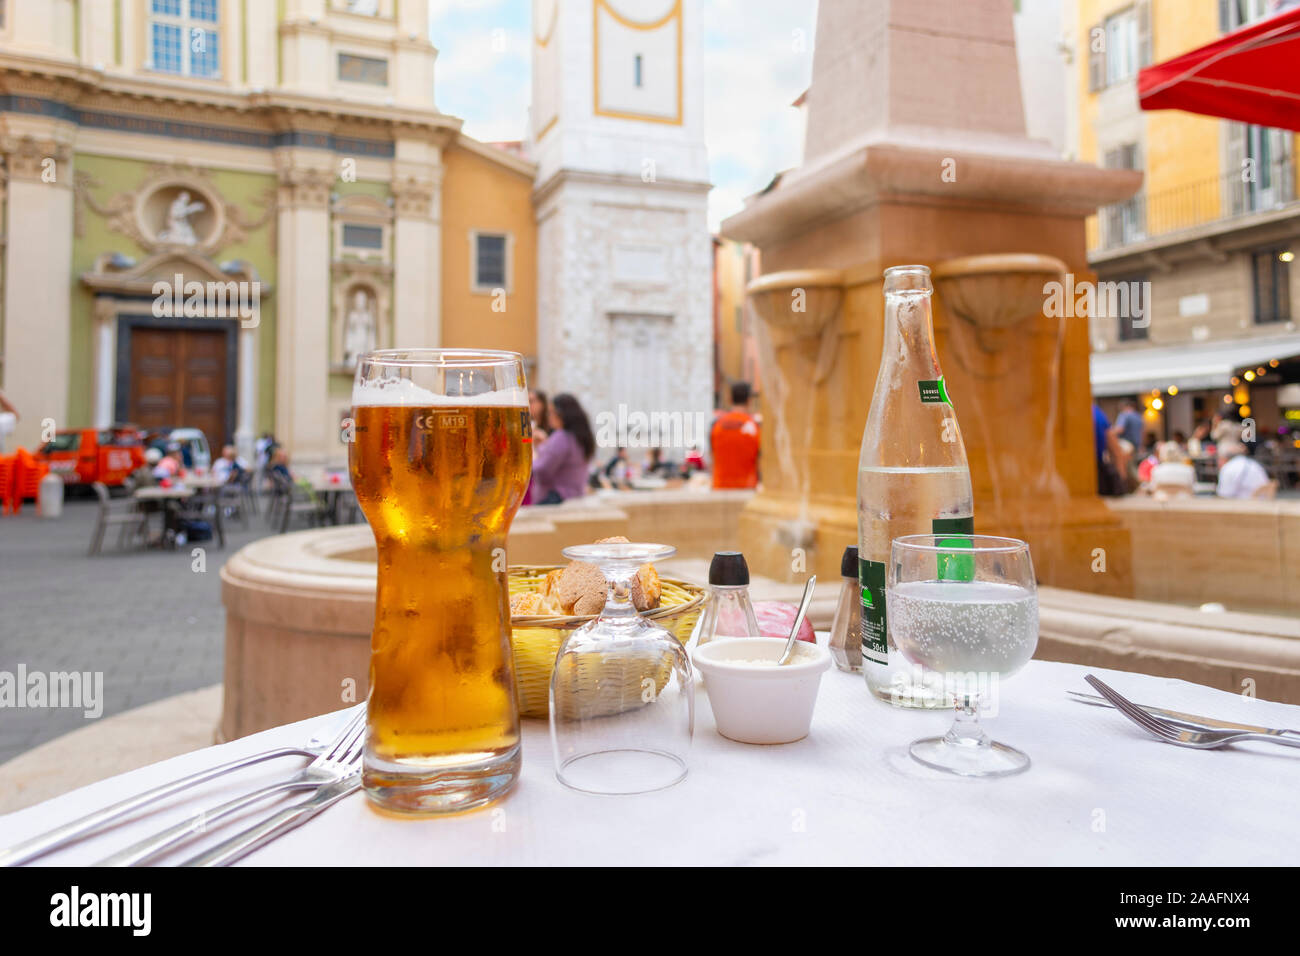 A basket of bread and rolls, a glass of beer and a bottle of water on a patio table in a piazza in front of a fountain in Nice France. Stock Photo